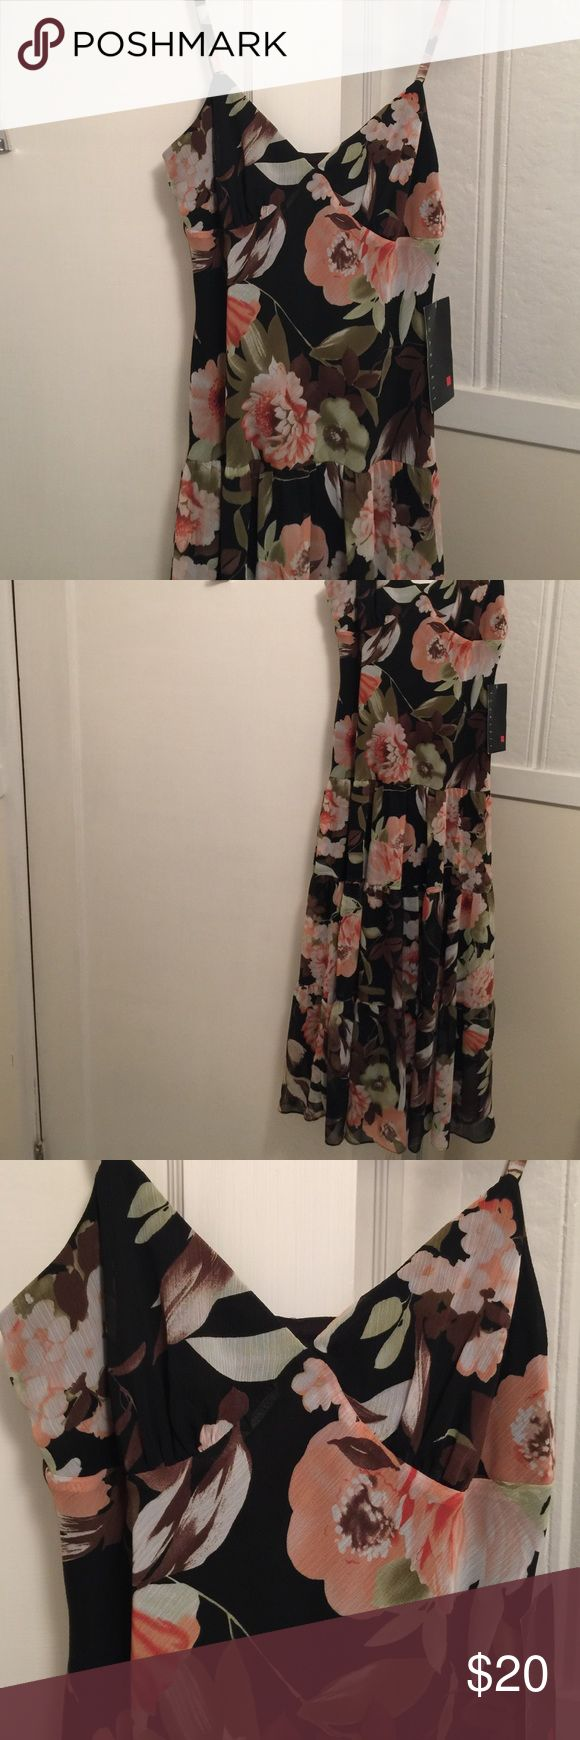 Scarlett dress, new with tags, lined Scarlett dress, beautiful, new with tags, lined with black slip, flows nicely, great for any occasion! Scarlett Dresses Midi